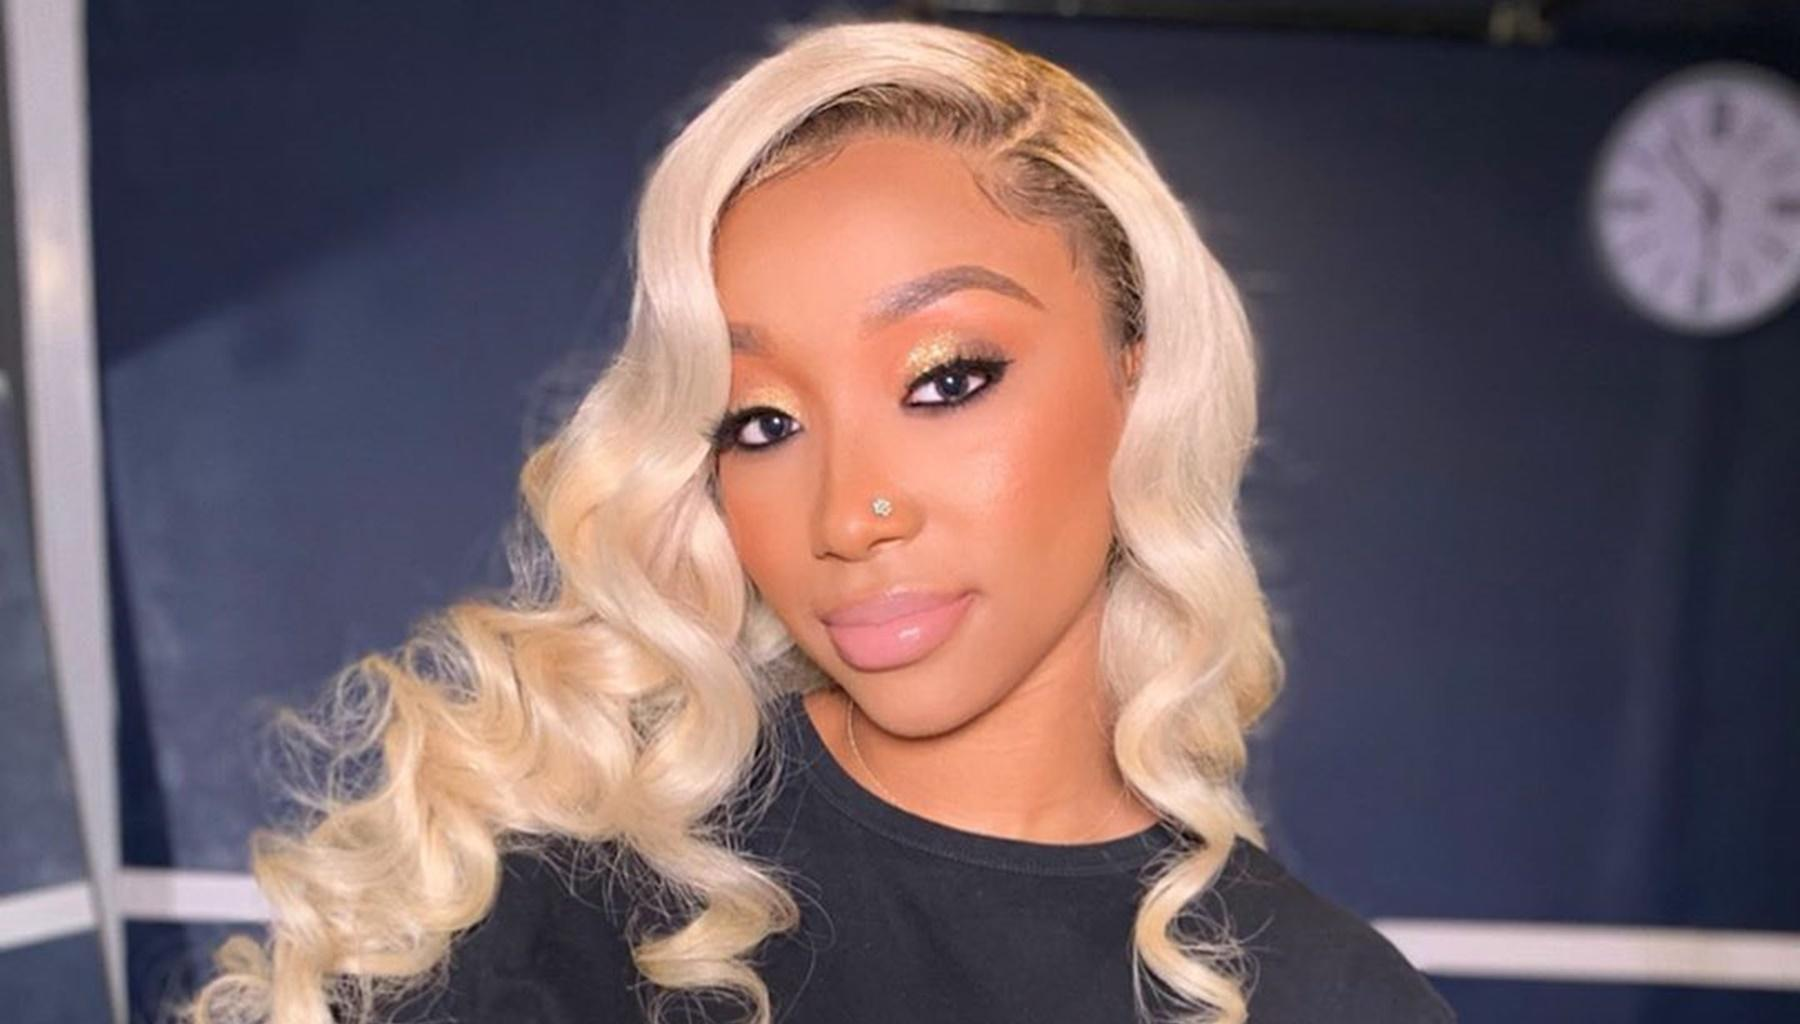 Zonnique Pullins Shows Off A New Item From Her Line With Luxe Kills - Tiny Harris And T.I. Support Her